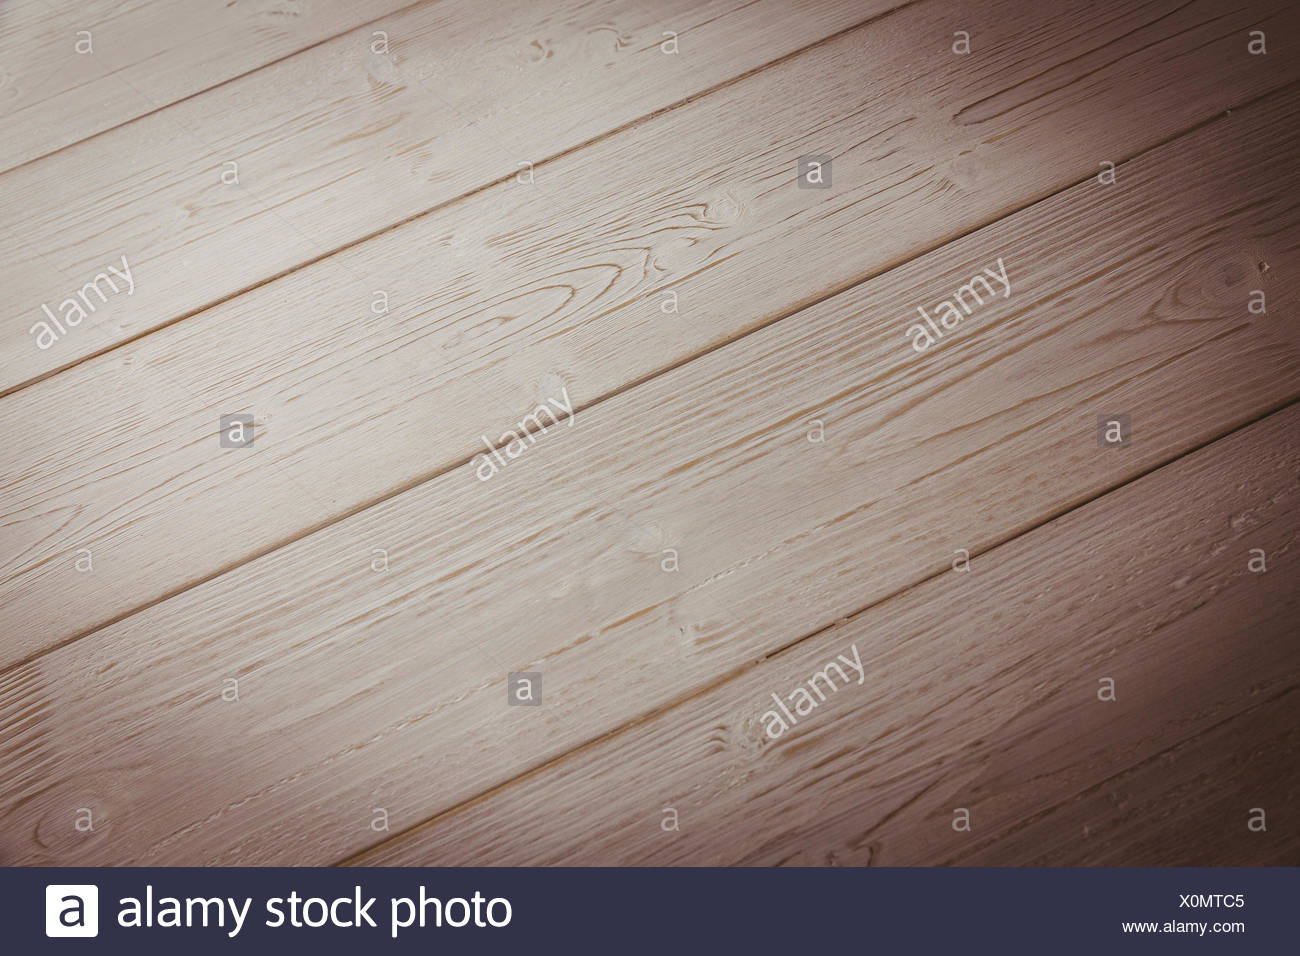 Wooden table - Stock Image